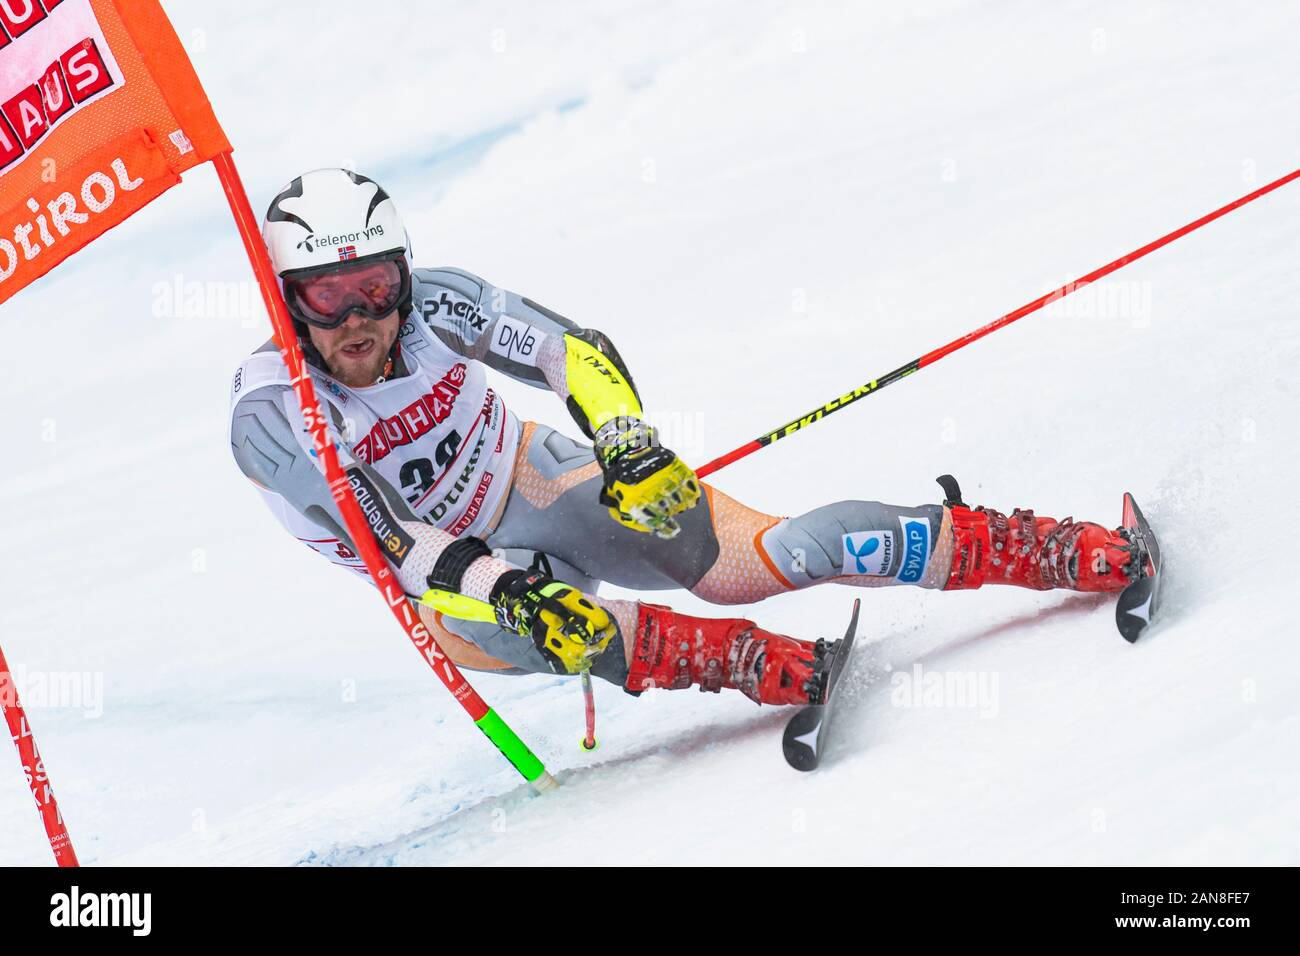 Alta Badia, Italy 22 December 2019.  KILDE Aleksander Aamodt (Nor) competing in the Audi Fis Alpine Skiing World Cup Men's Giant Slalom on the Gran Ri Stock Photo